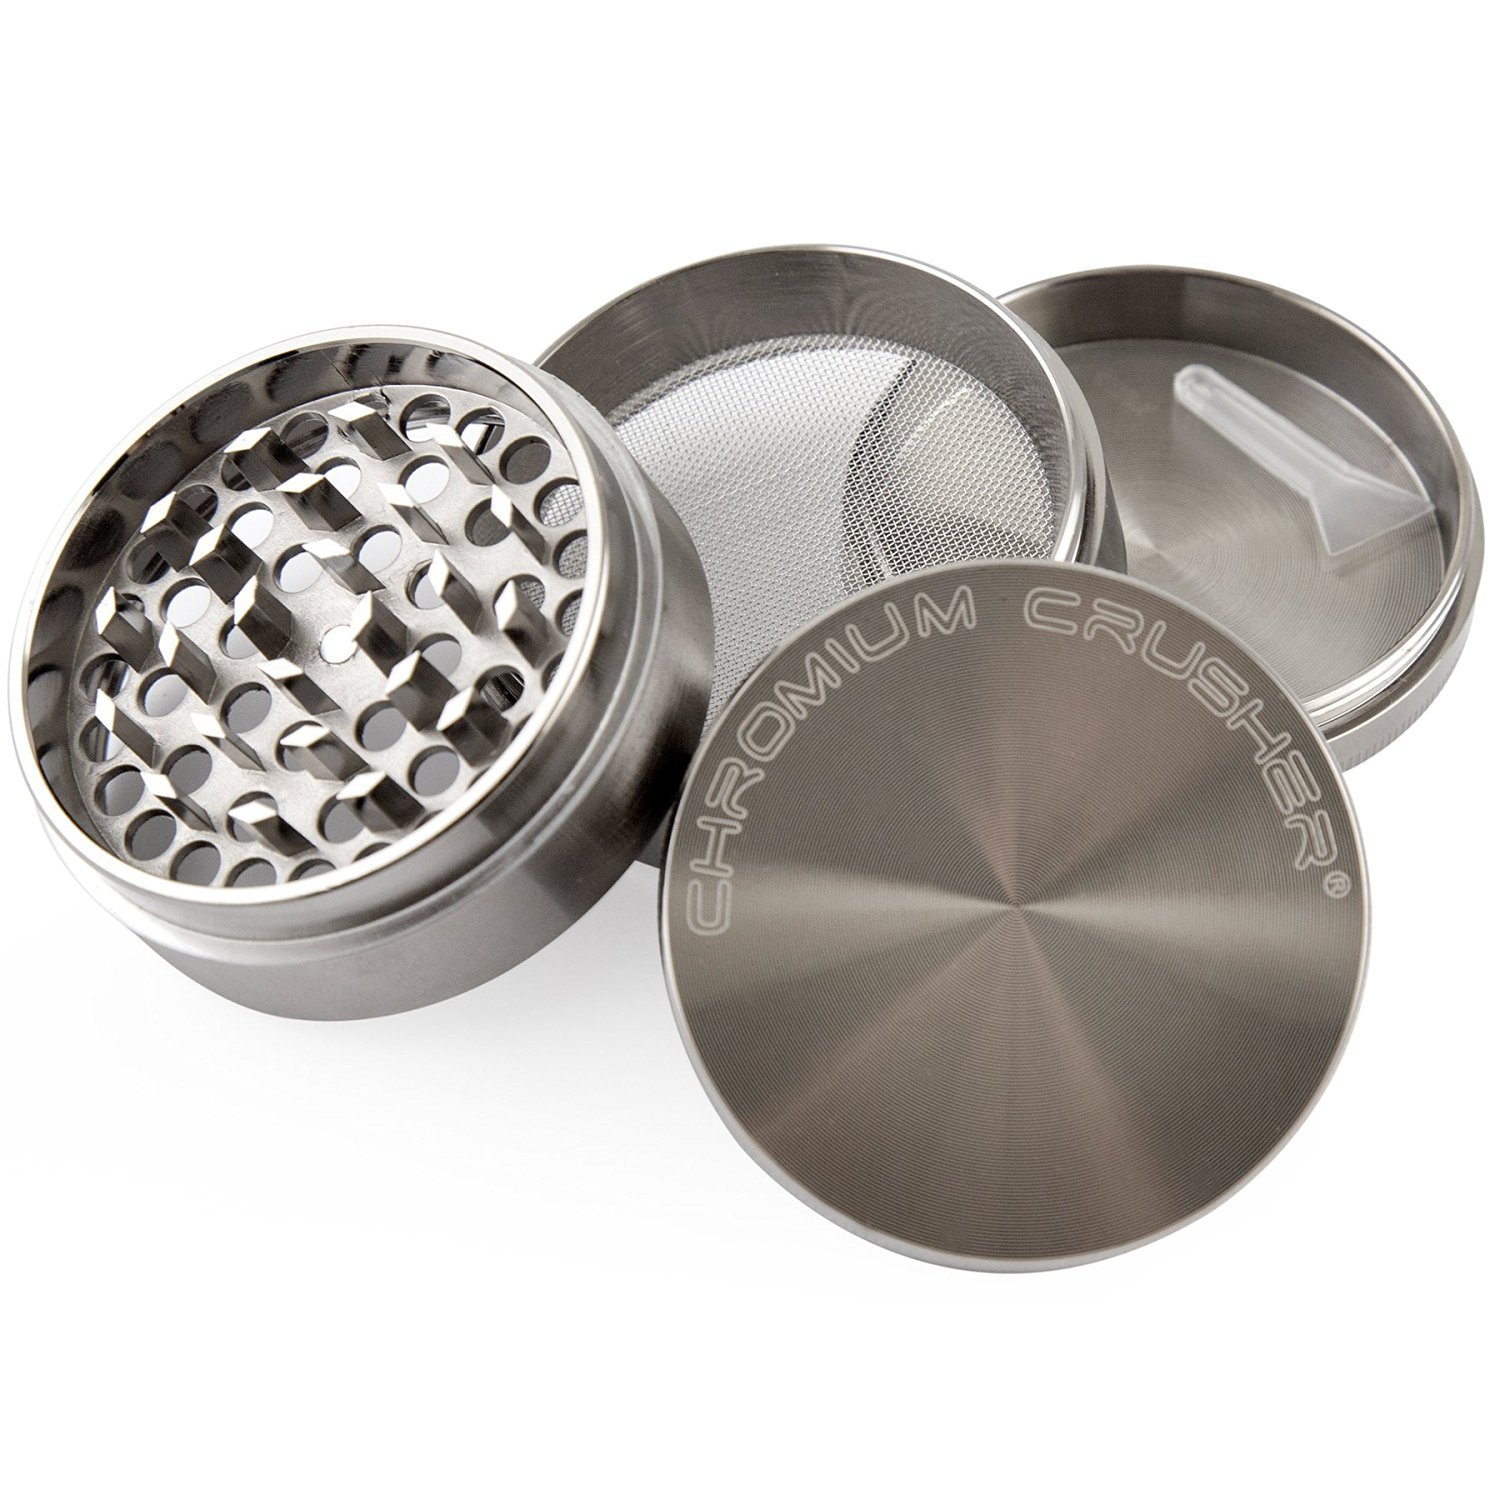 Chromium Crusher 2.5 Inch 4 Piece Tobacco Spice Herb Grinder - Gun Metal